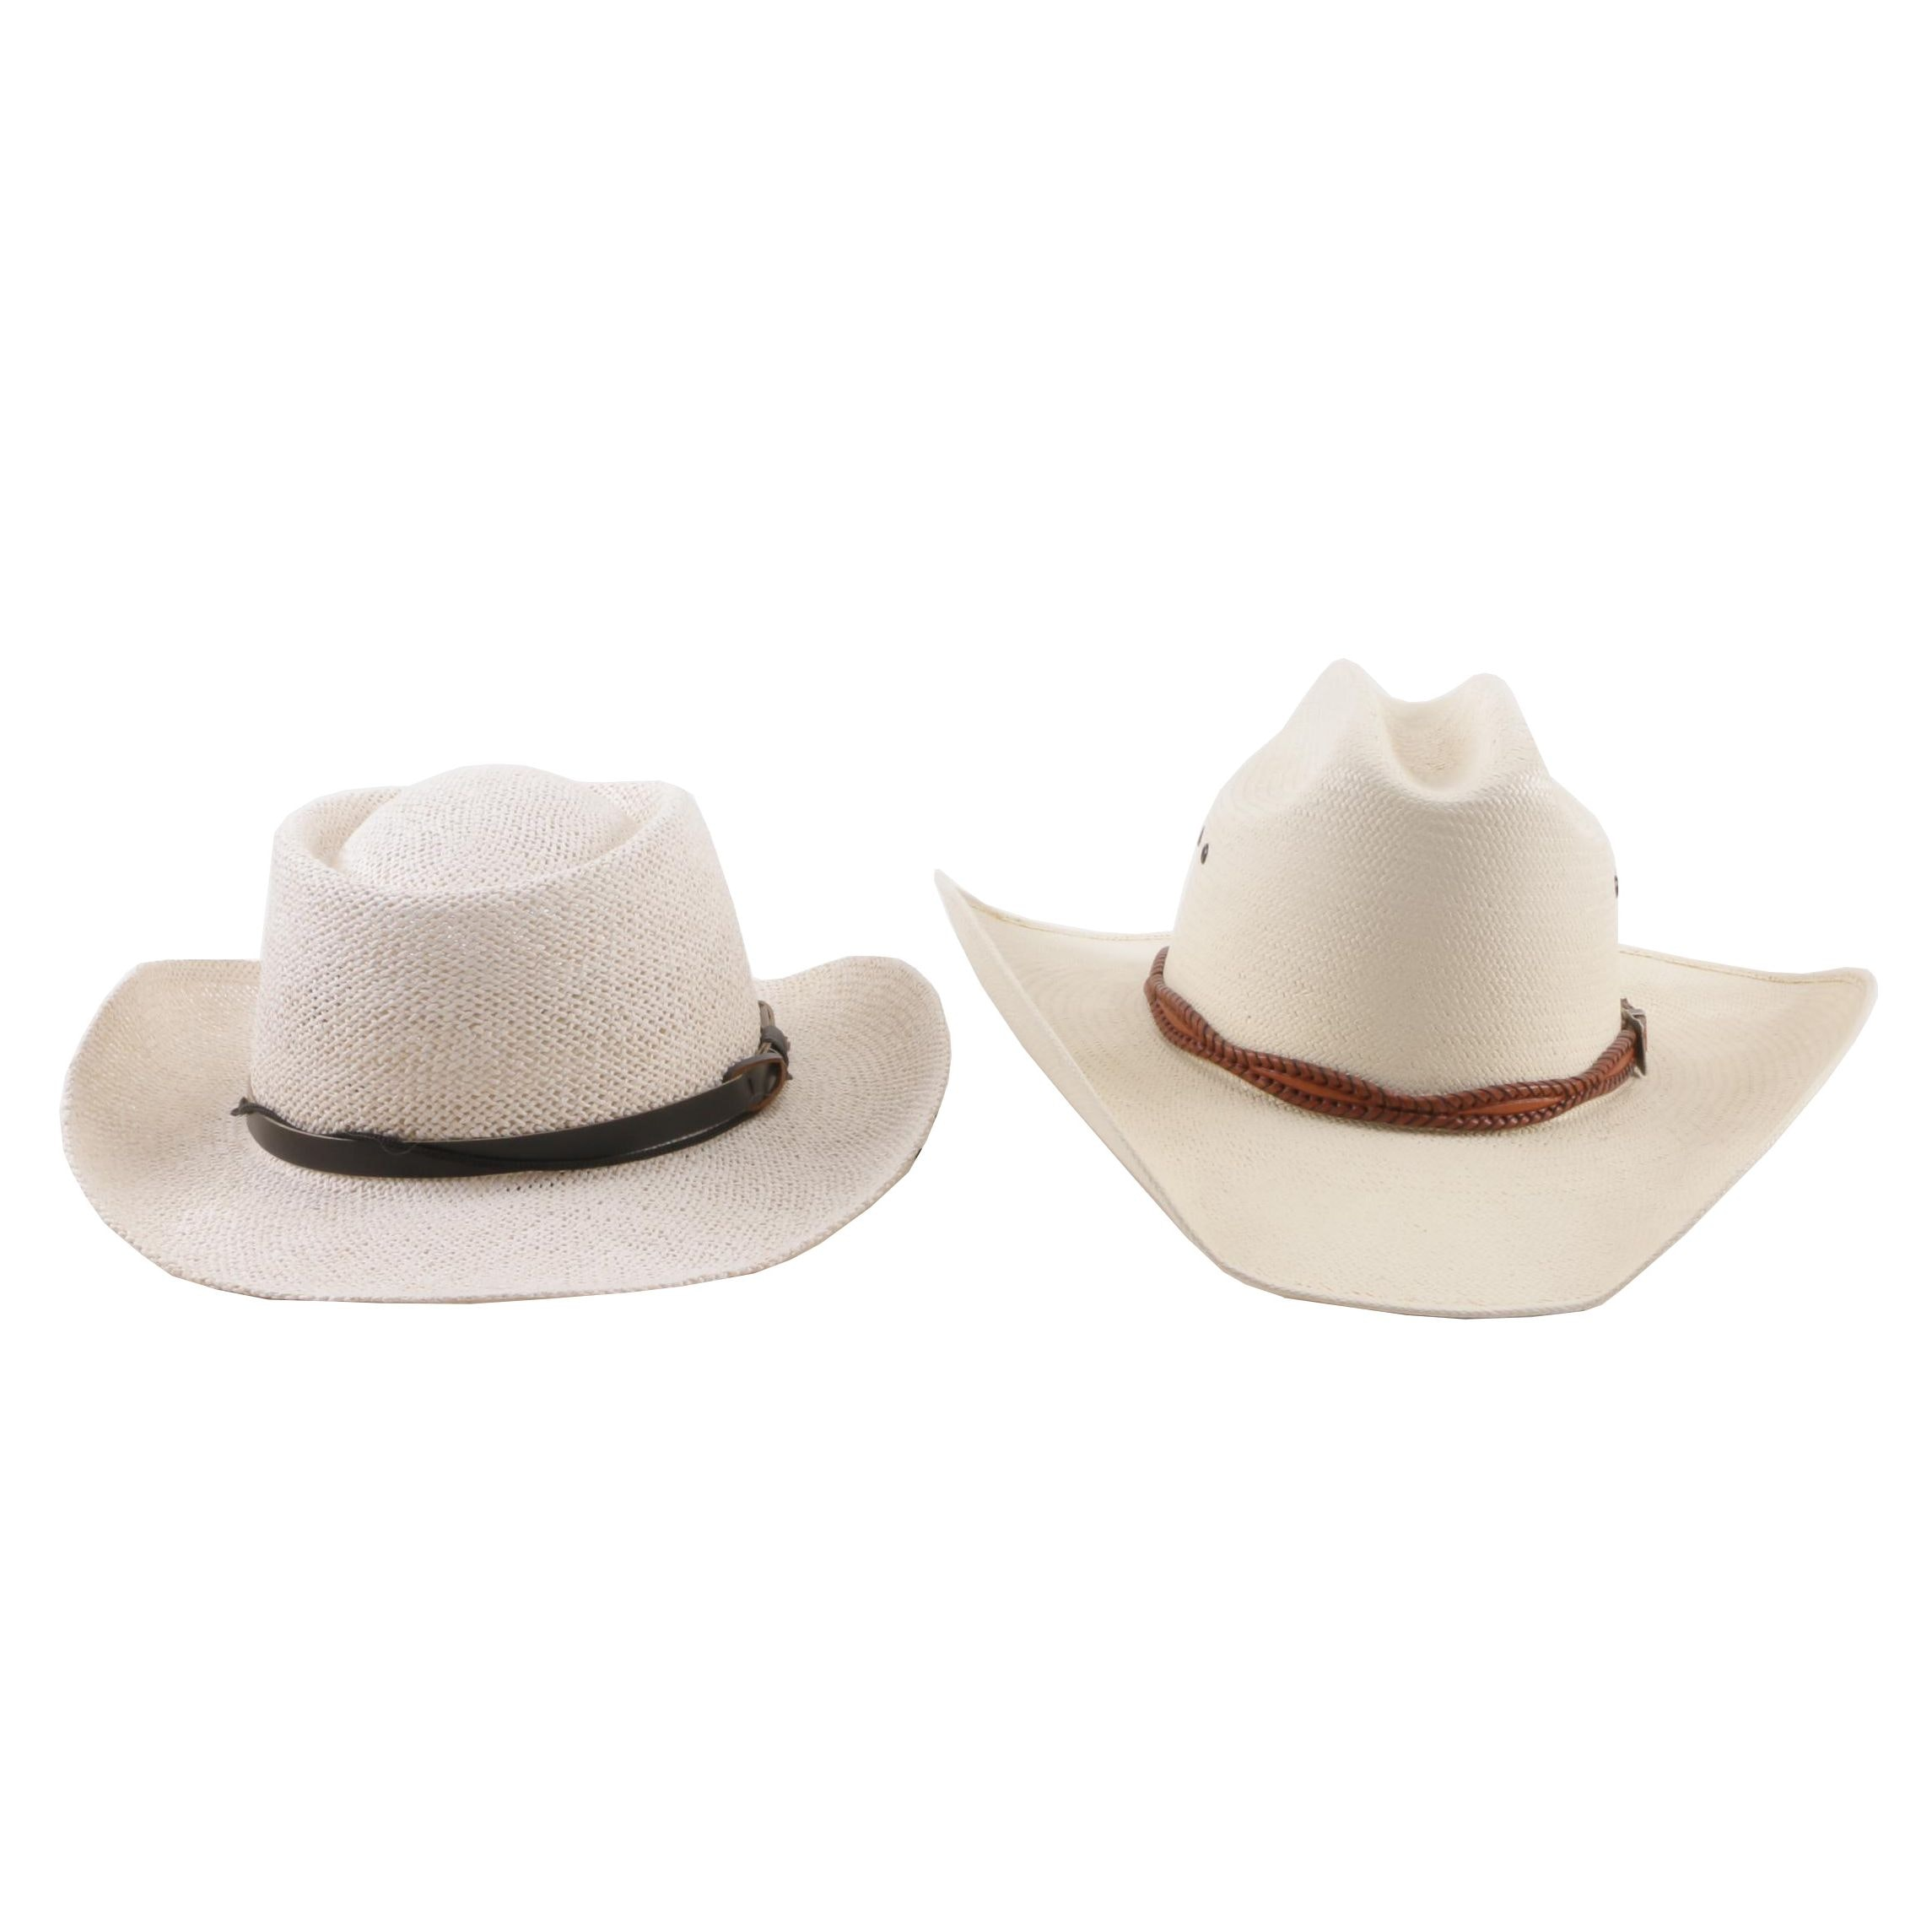 Men's Woven Hats including Western Fashion Accessories